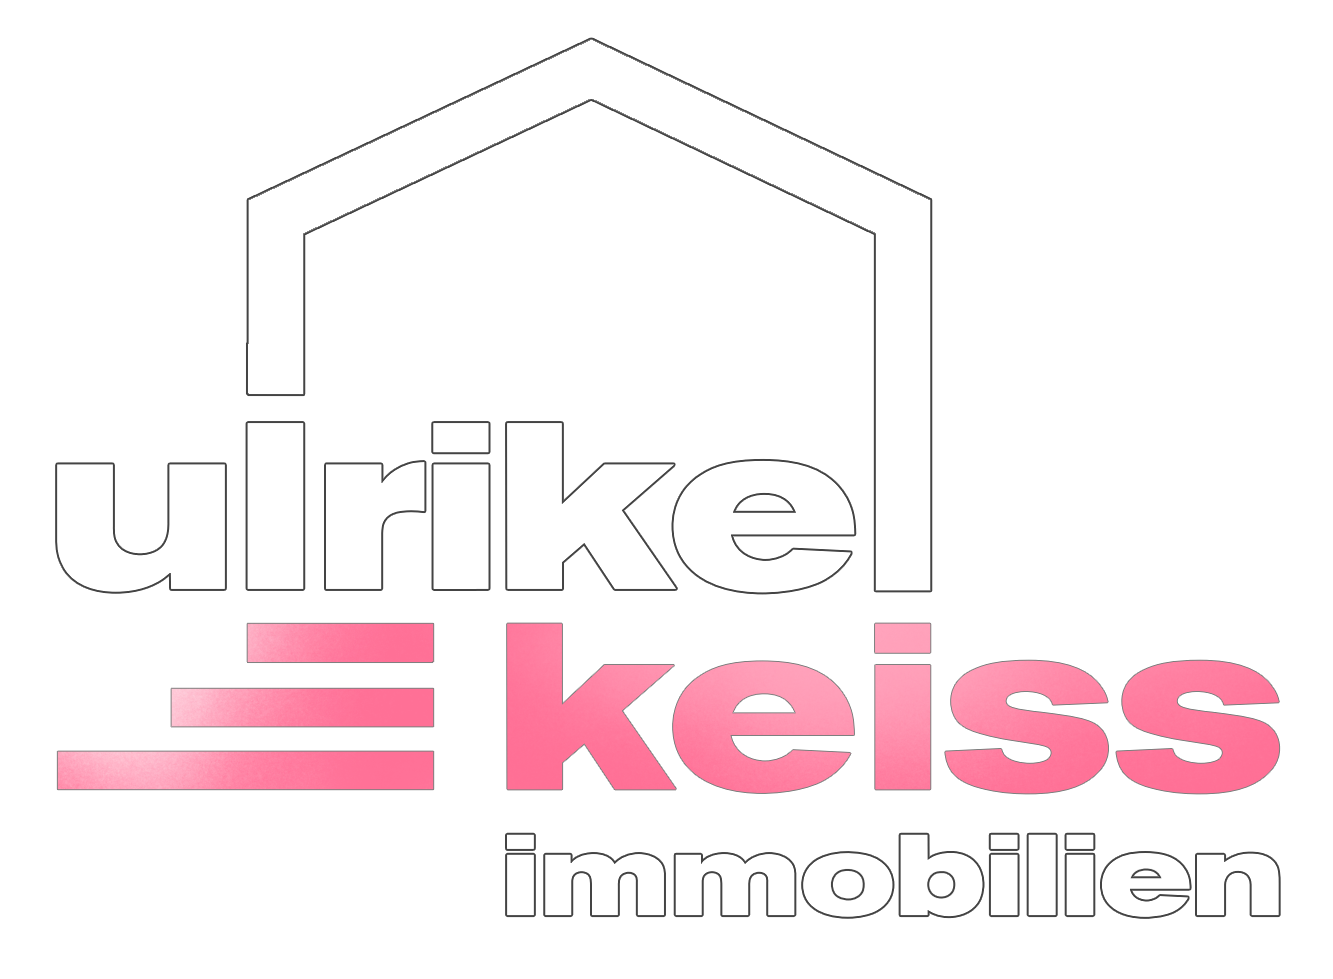 ulrike keiss immobilien